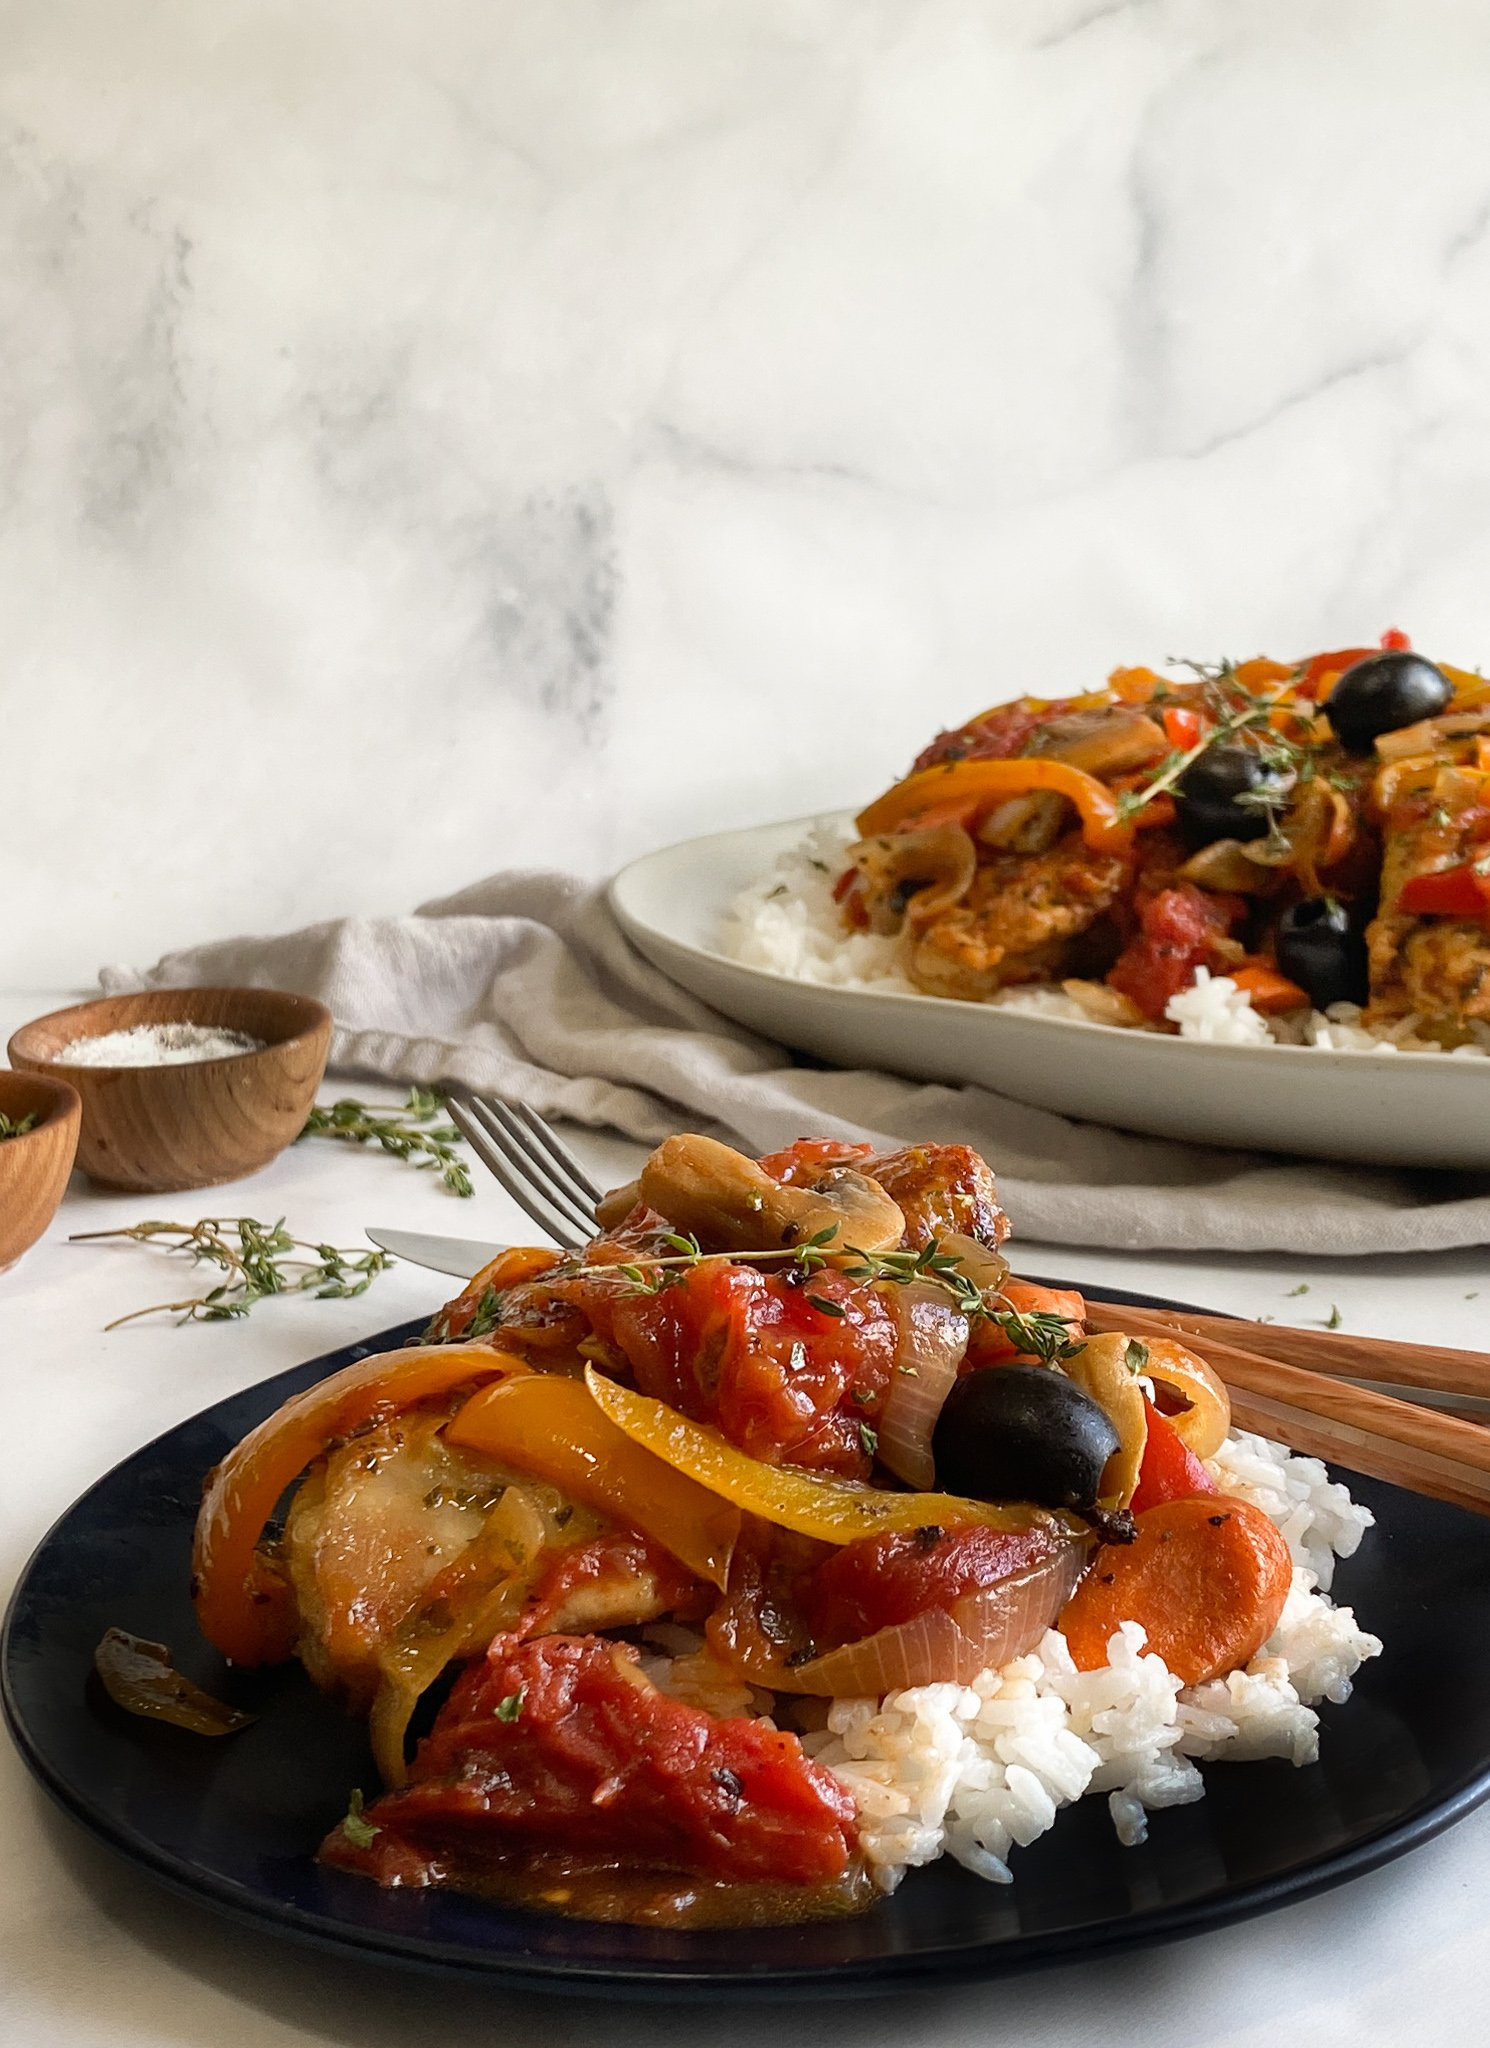 A serving of chicken cacciatore is sitting on a black plate over a bed of jasmine rice with the platter of the remaining dish in the background ready to be served up and eaten by the entire family.